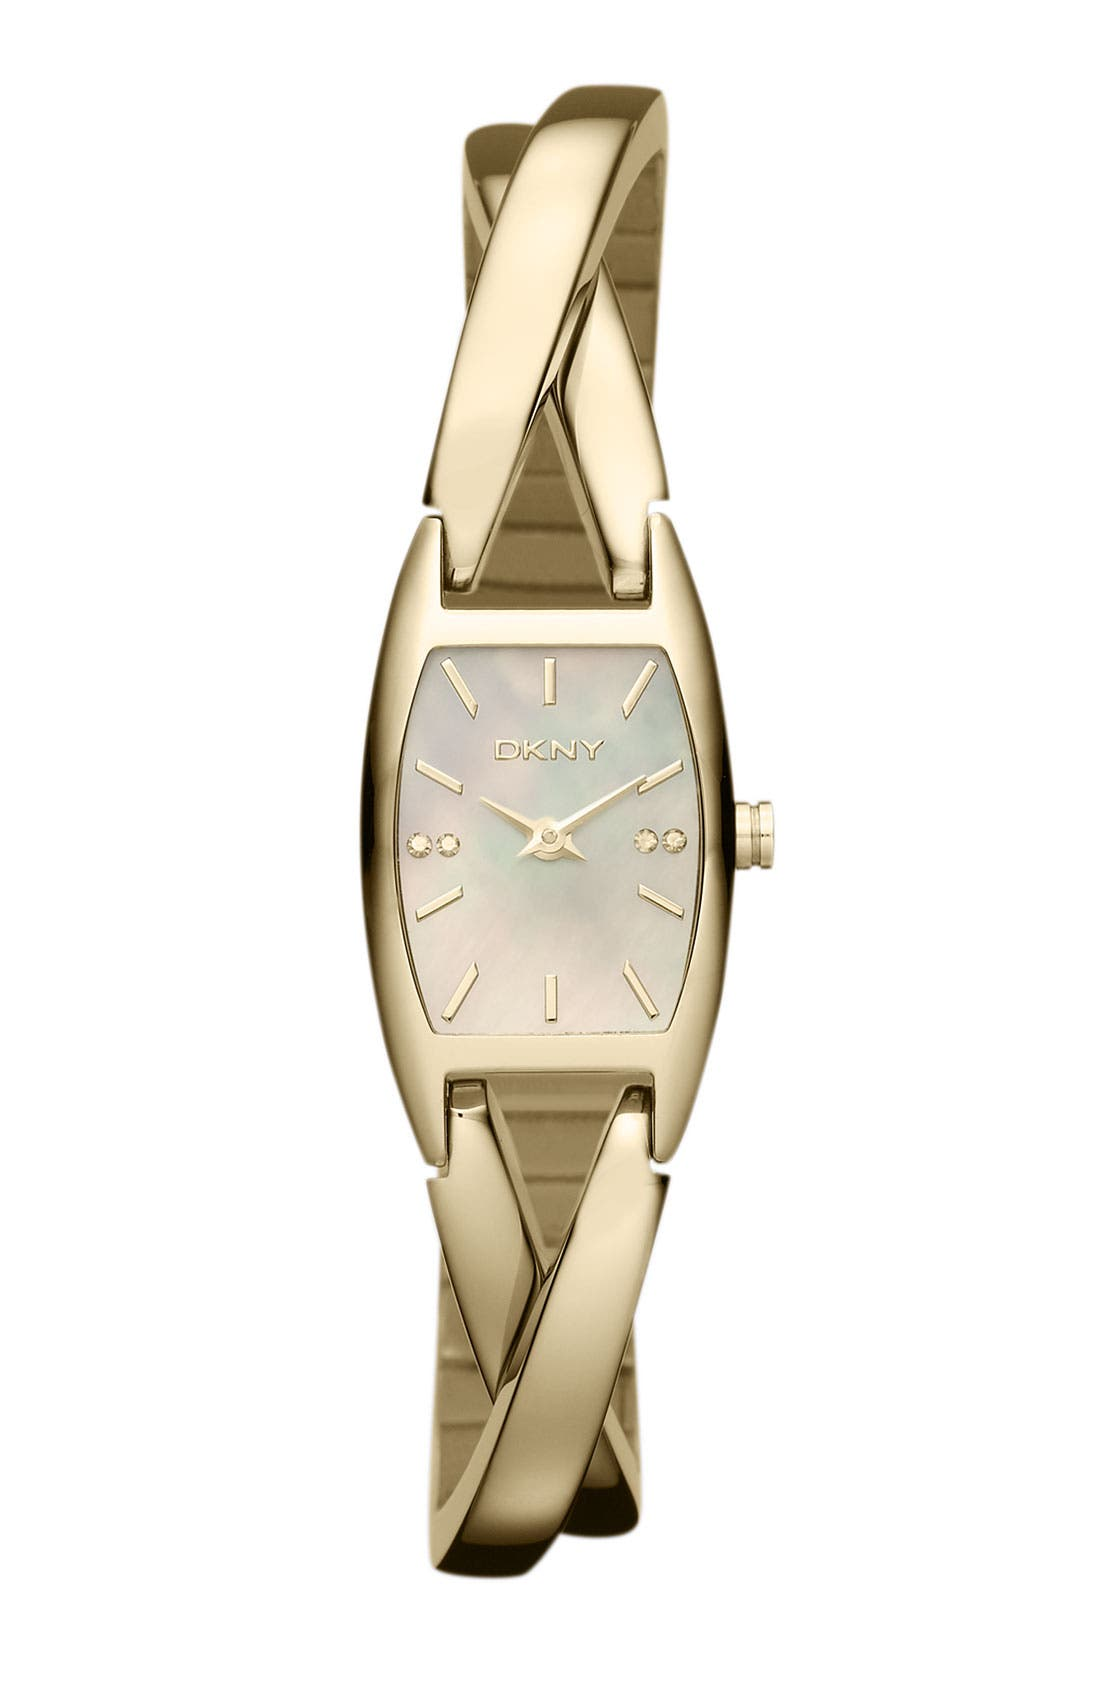 Main Image - DKNY 'Crosswalk' Bangle Watch, 18mm x 30mm